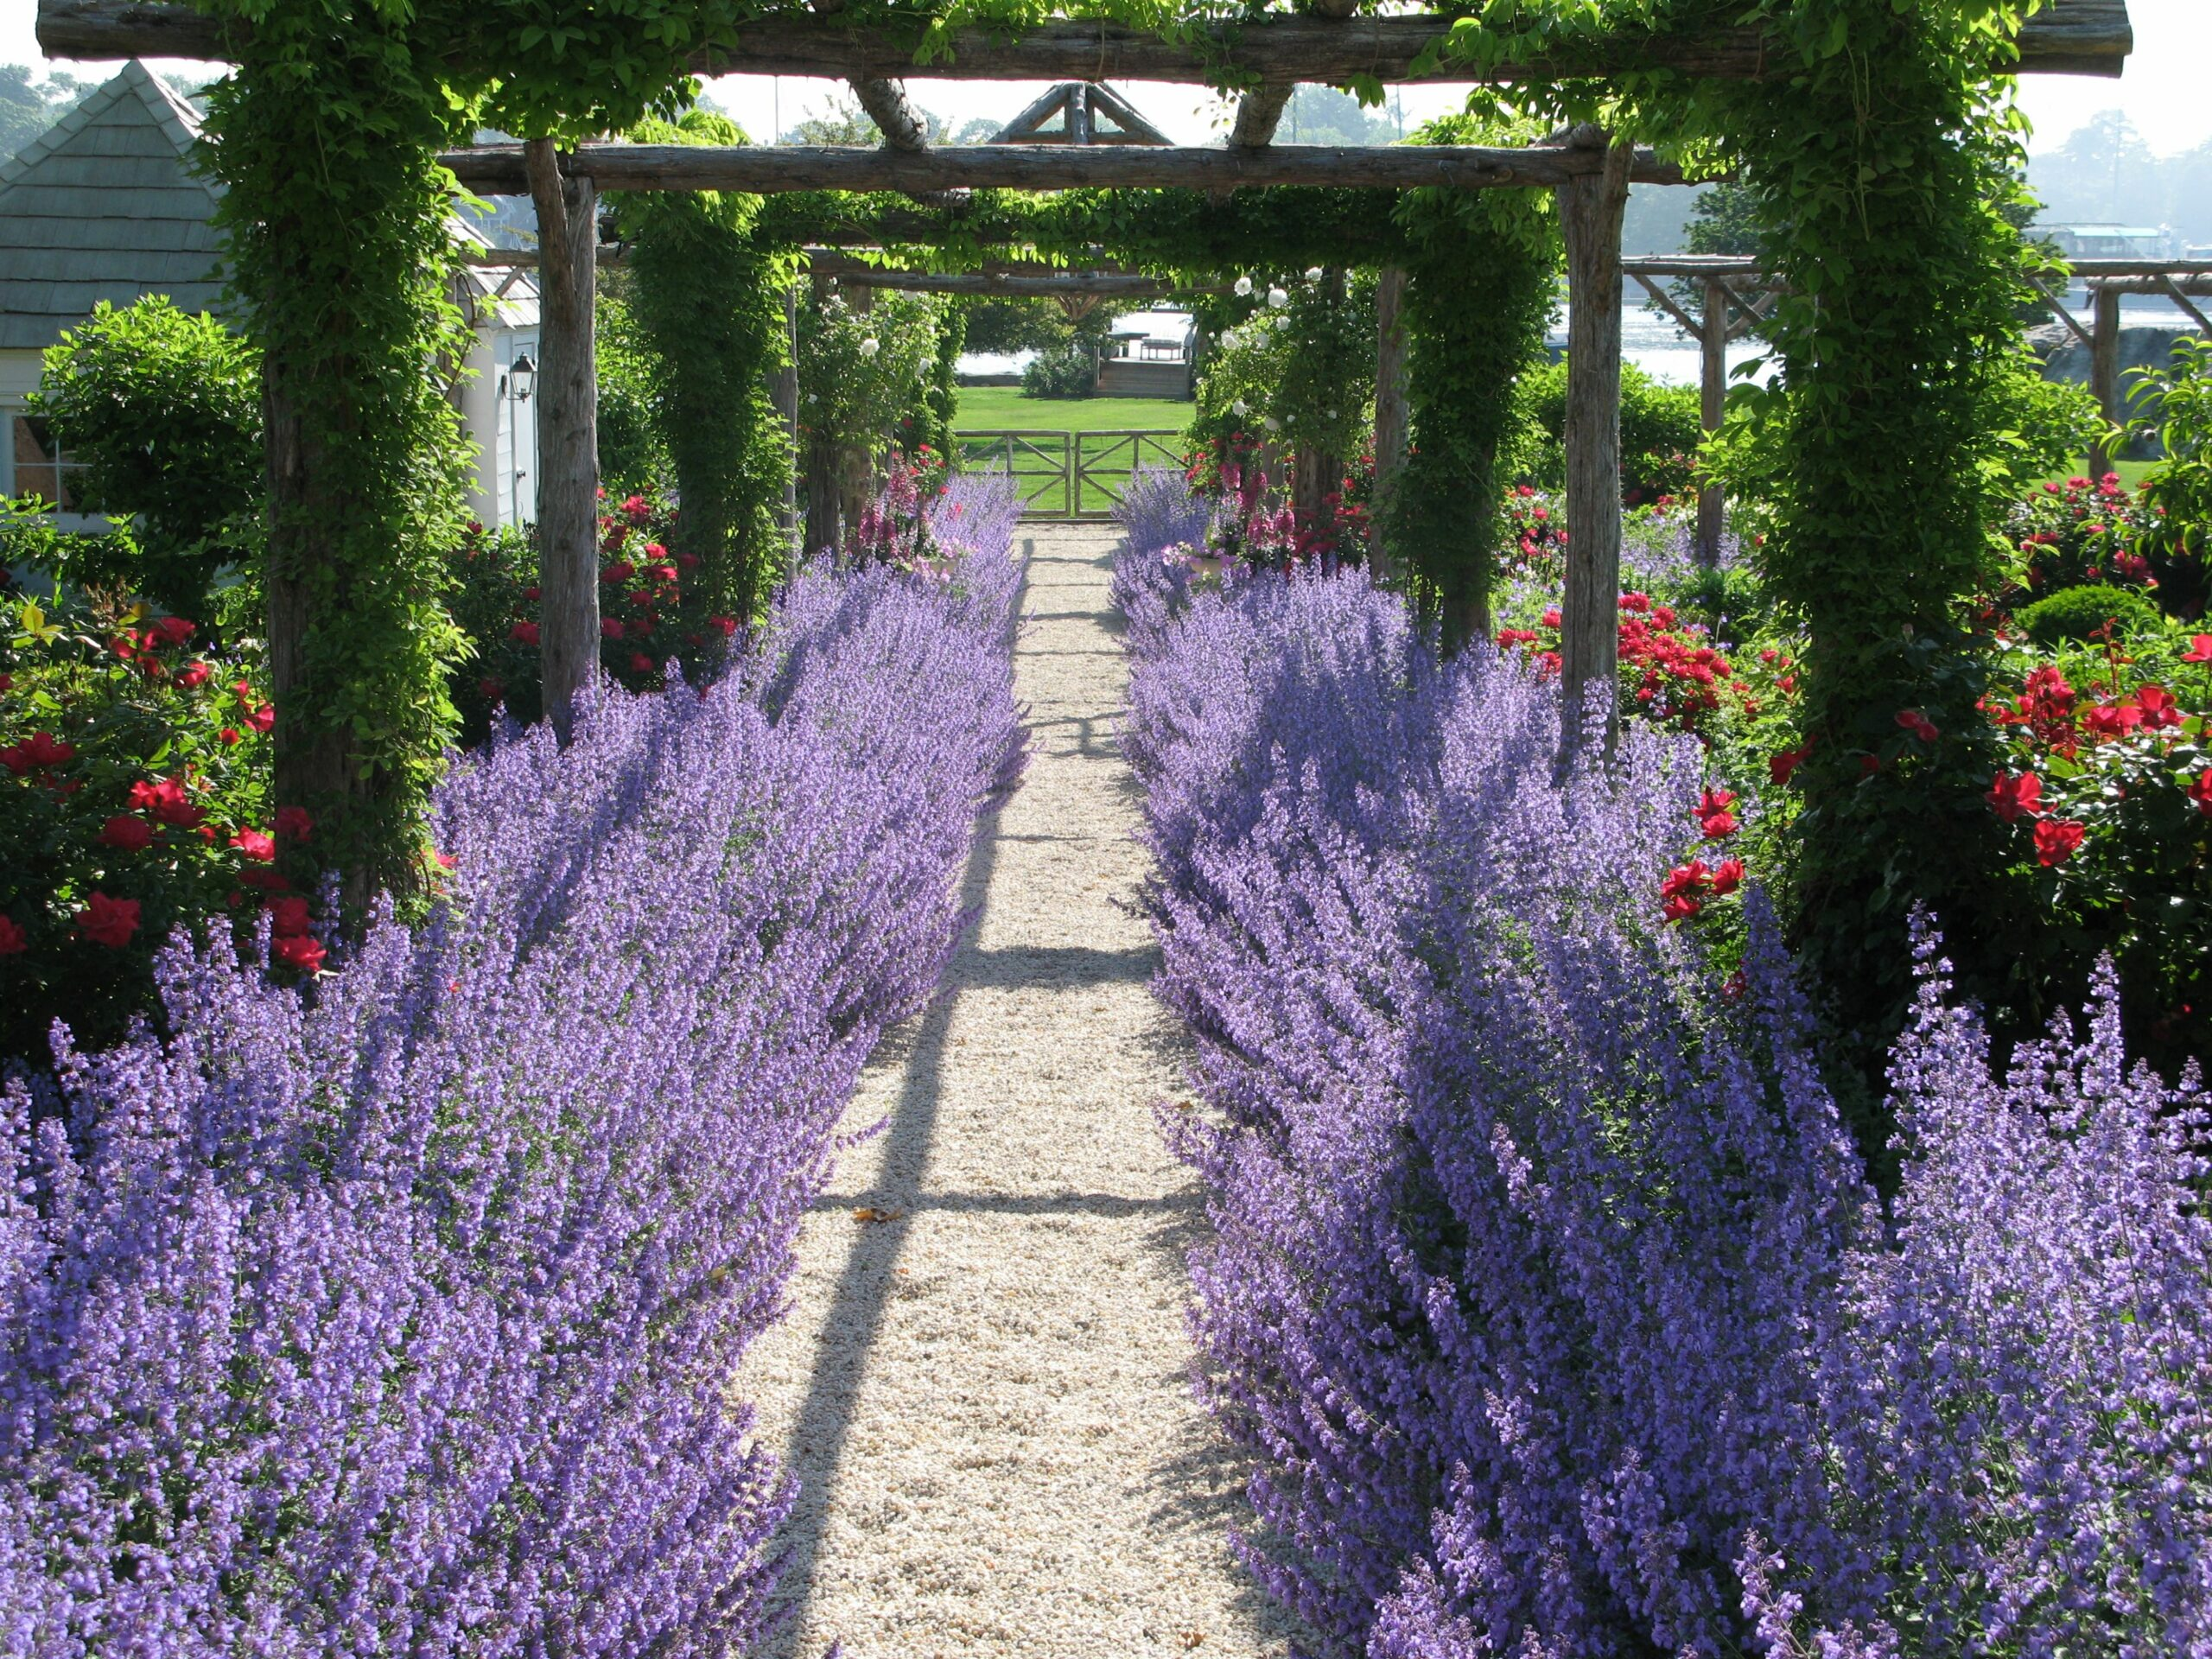 Garden design ideas lavender | Hawk Haven - garden ideas lavender